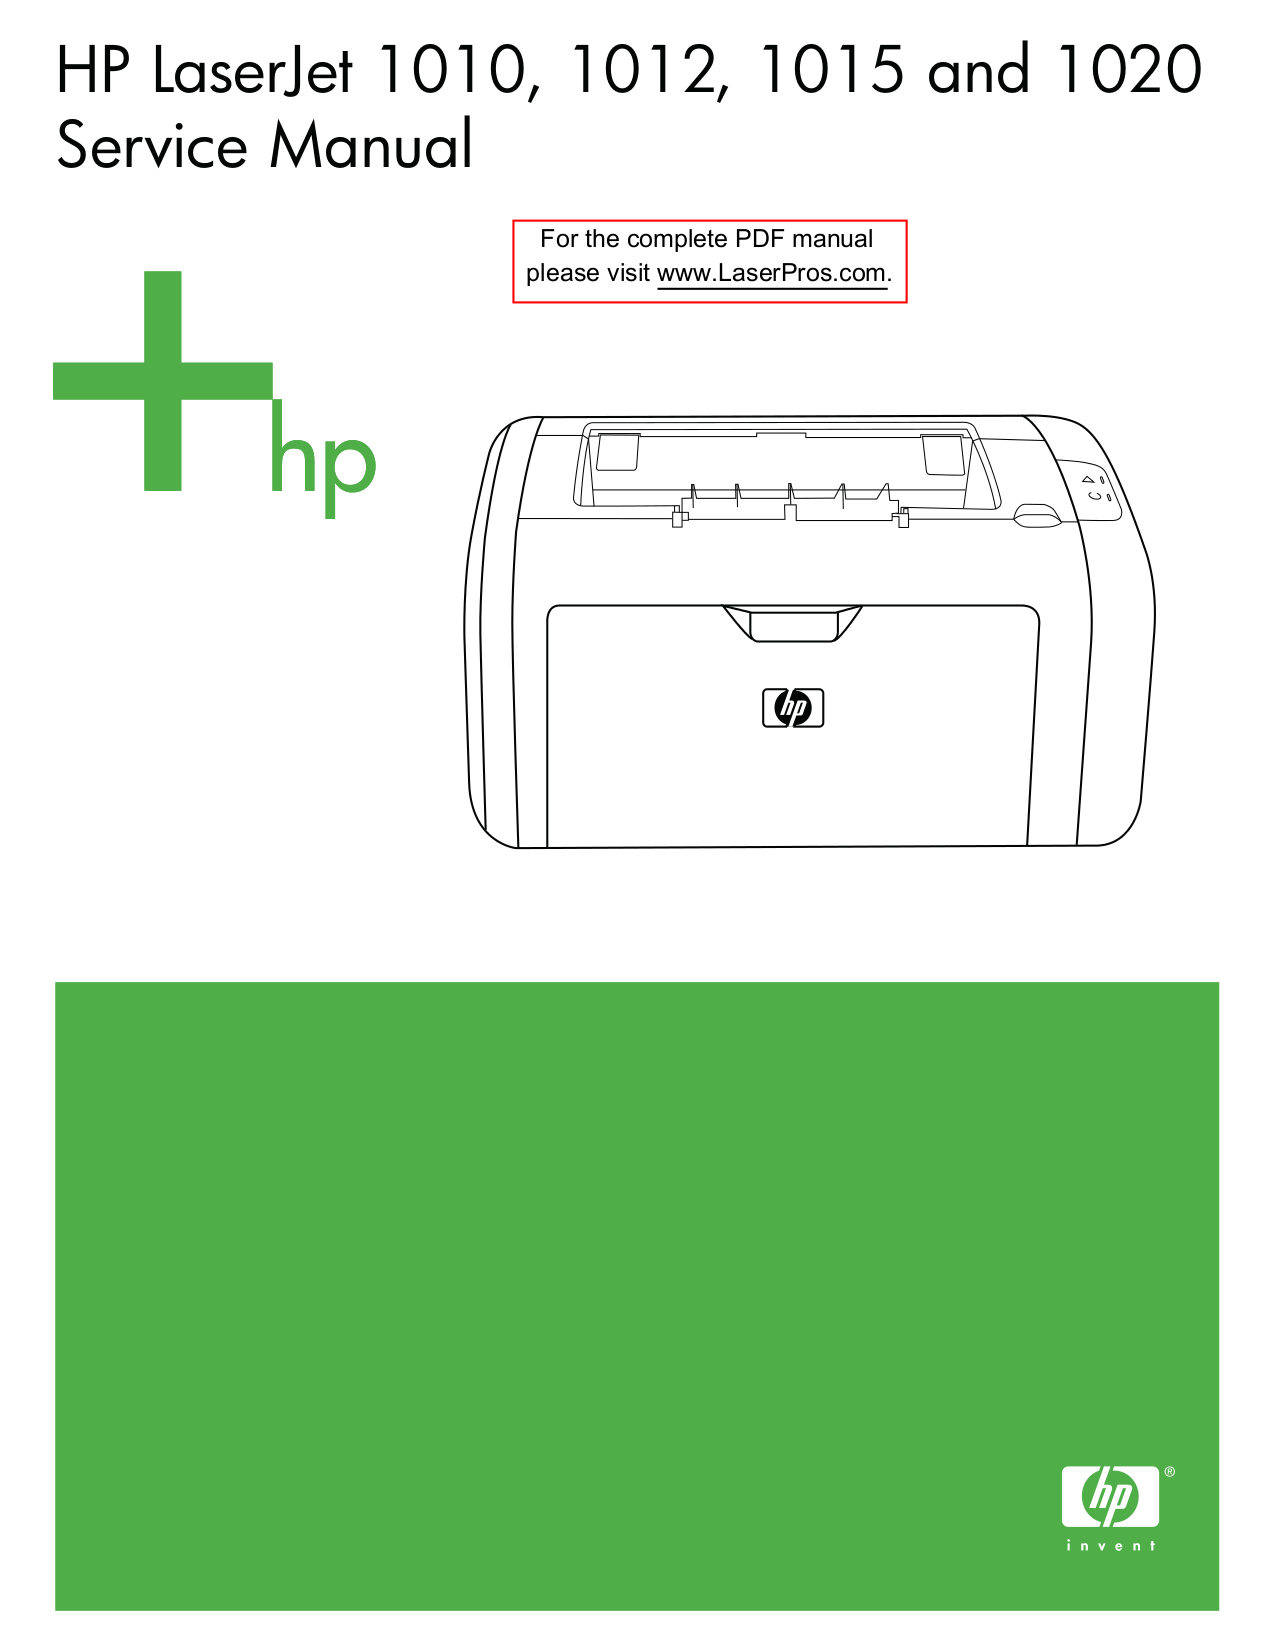 Hp Laserjet Quick Reference Service Manual Pdf Download 1100a Tagshp 4050 User Downloadhp 1018 1100ahp 1100 Hpcom